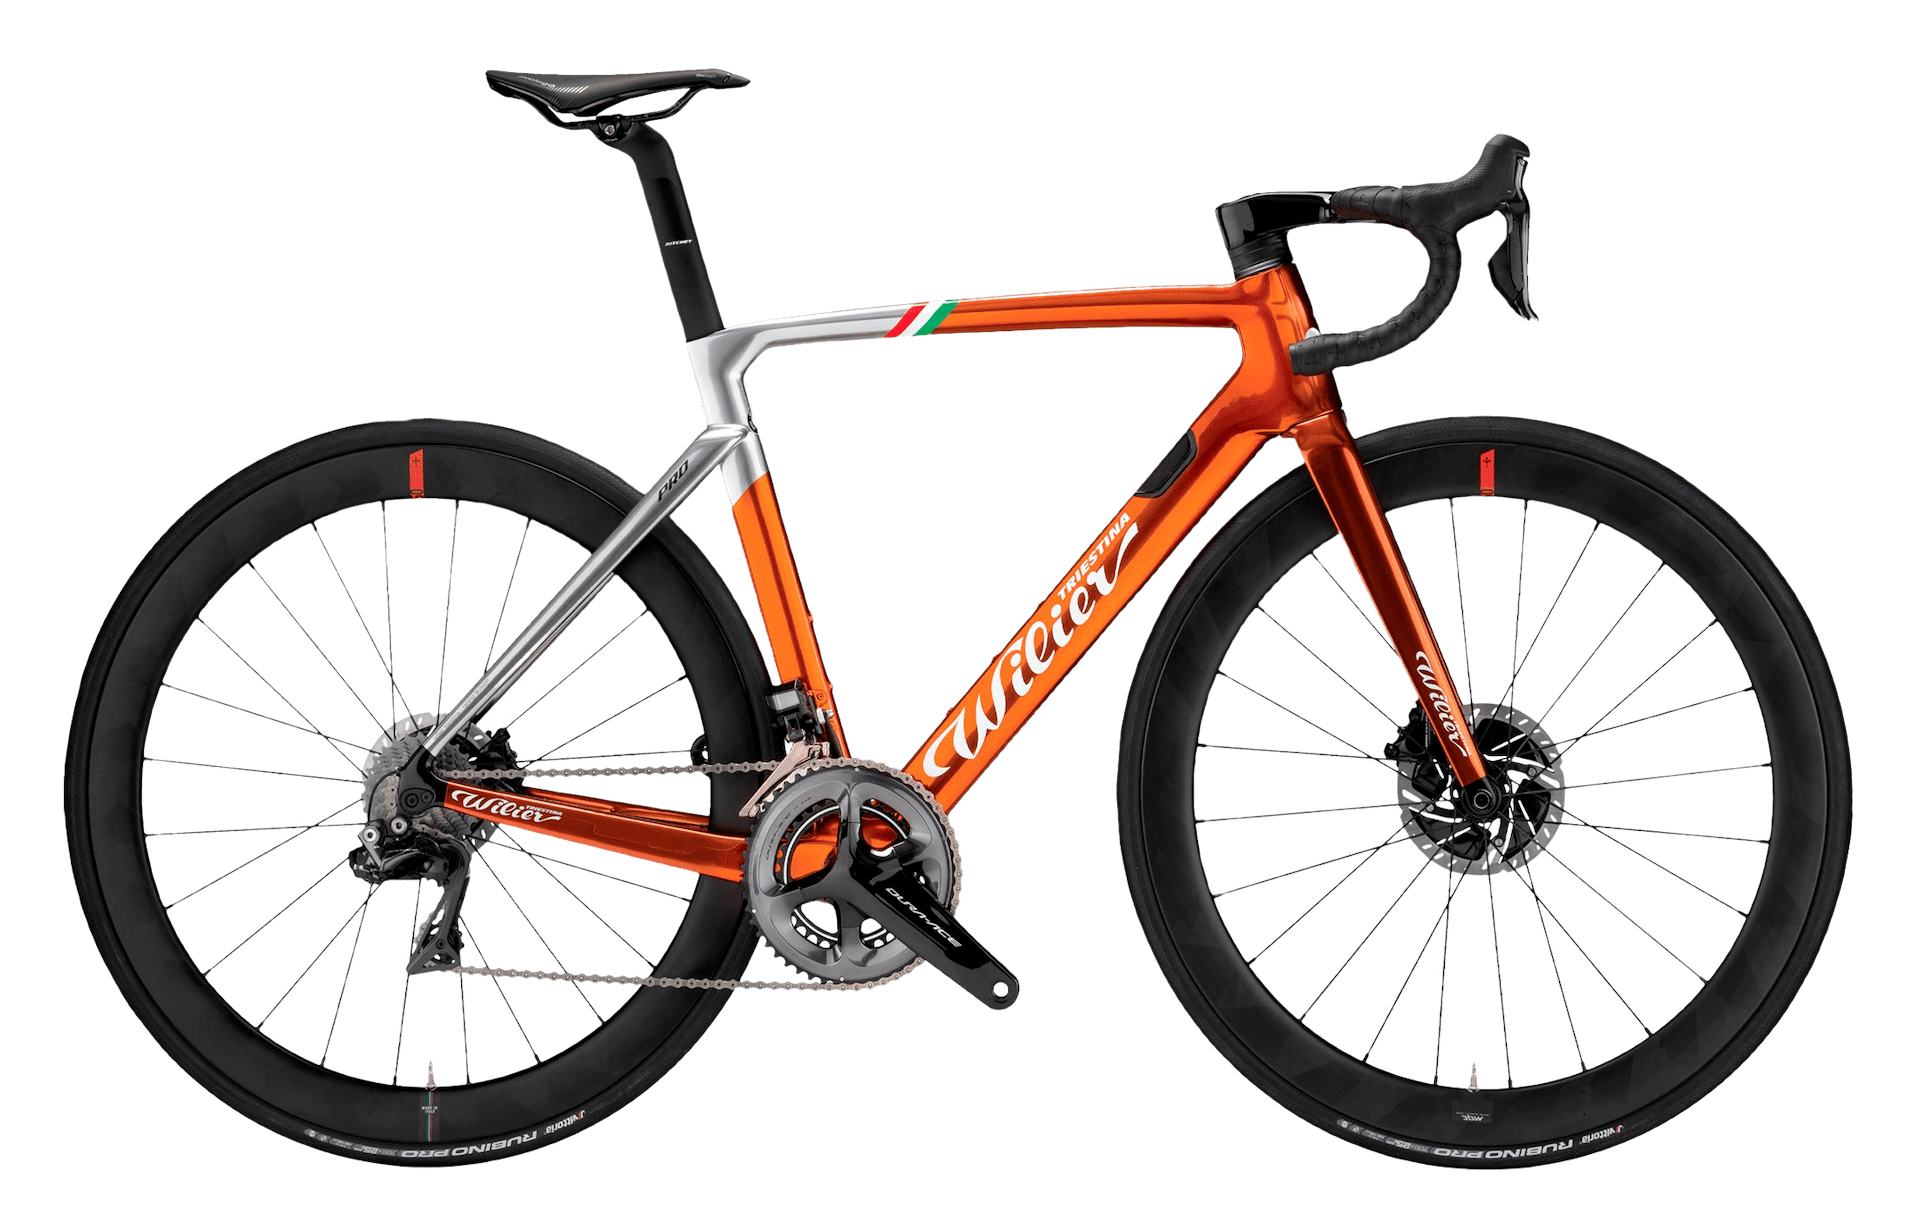 wilier cento 10 pro racefiets